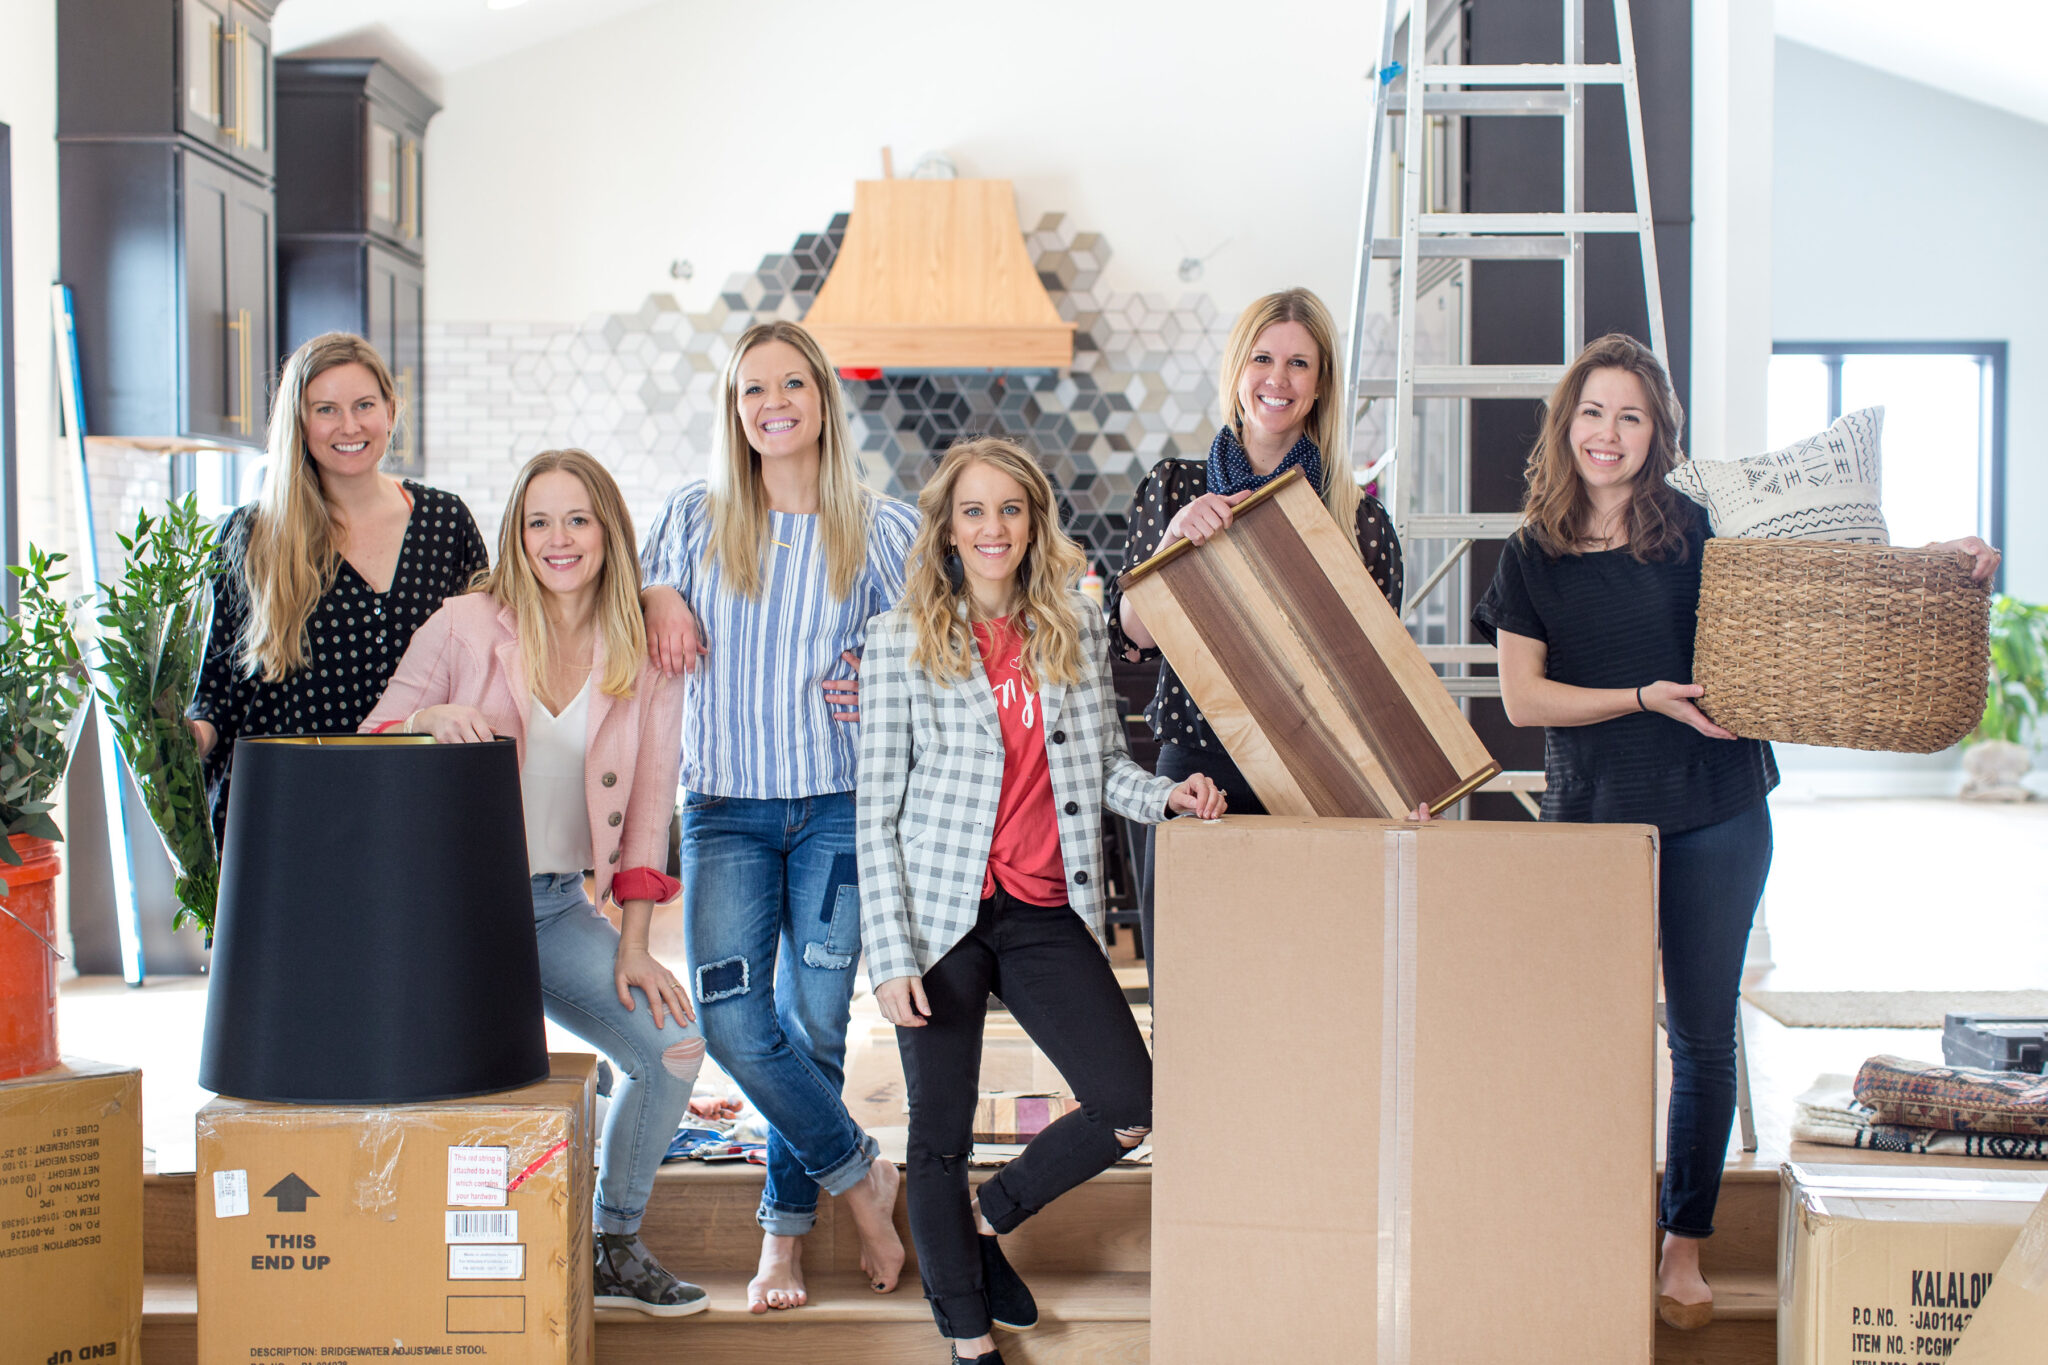 the dream team of home stylers including Morgan from construction2style, Jen from Paisley + Sparrow, Katie from JKath Design and Erin from Francios et moi